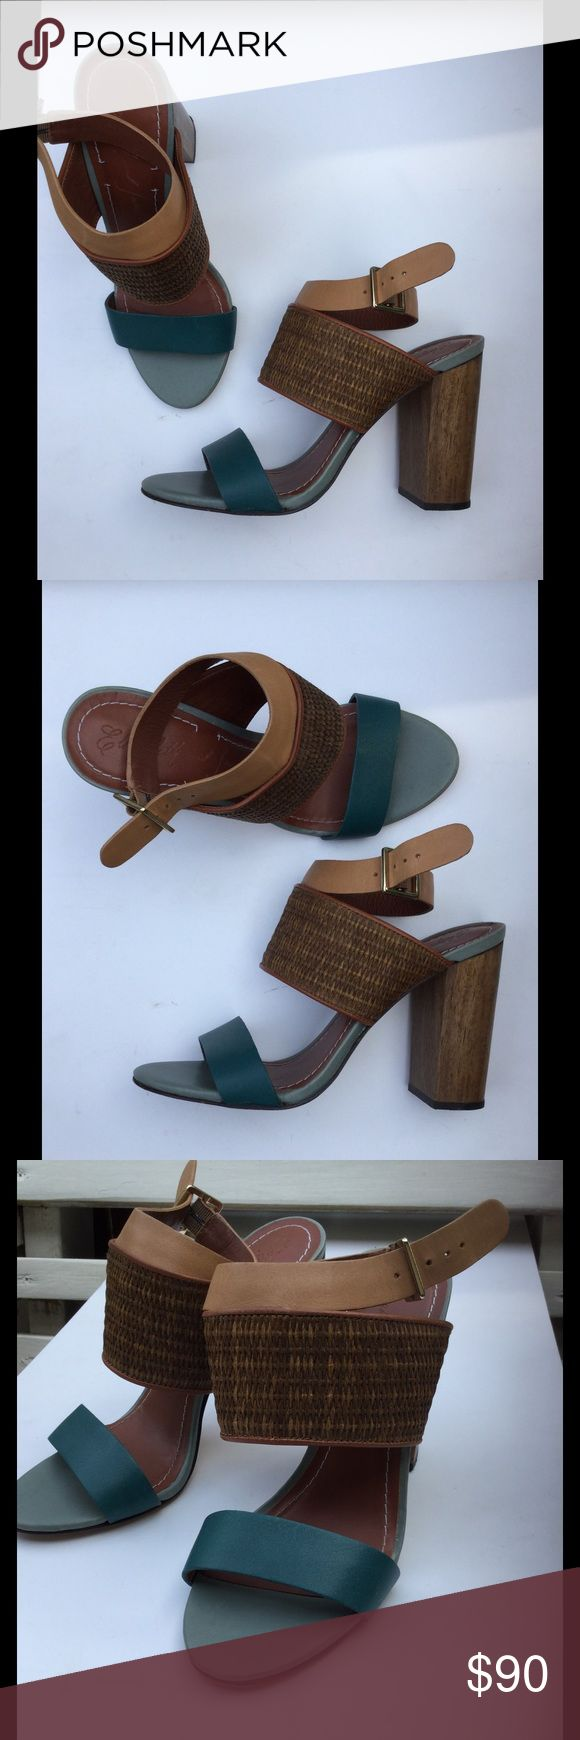 Elizabeth and James E-Clair Heels Teal & Brown Colorblock with chubby wood heel. Very comfortable! Genuine leather, Made in Brazil. Gently used, size 7B Elizabeth and James Shoes Heels